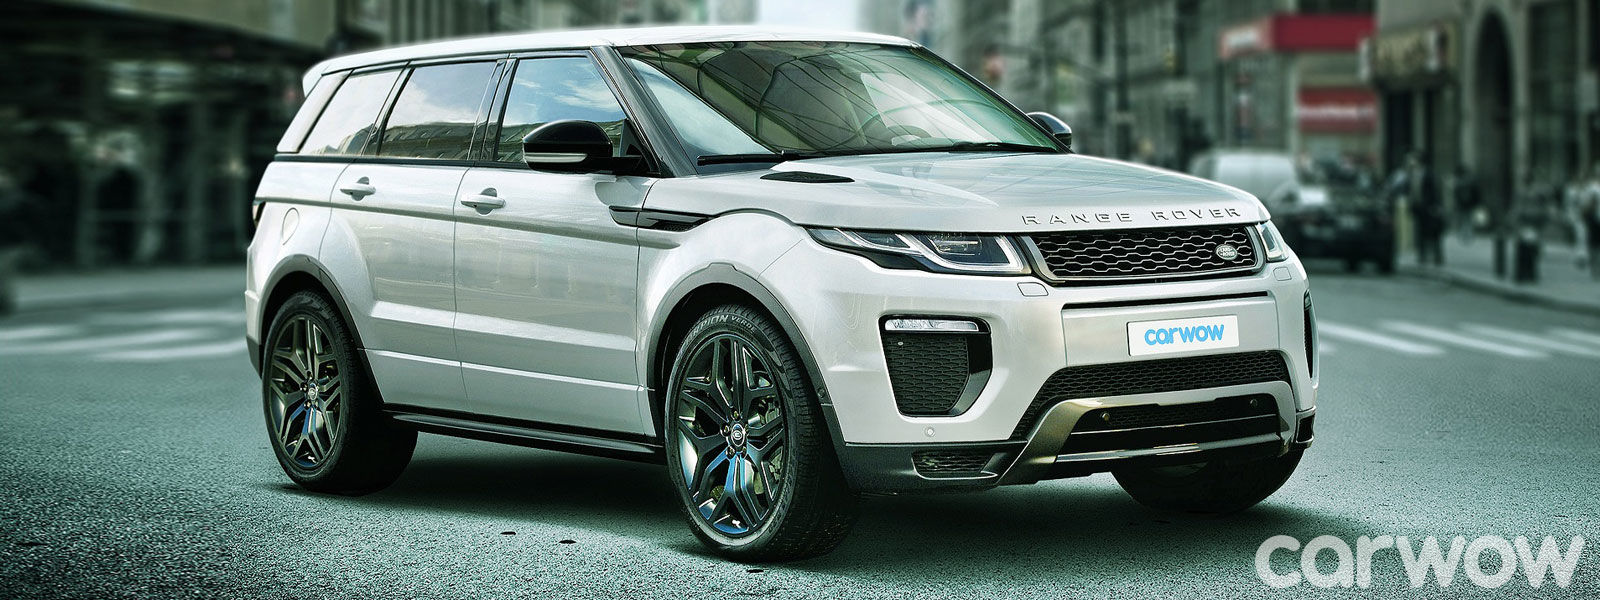 Range Rover Evoque 7 Seater Price Specs Release Date Carwow